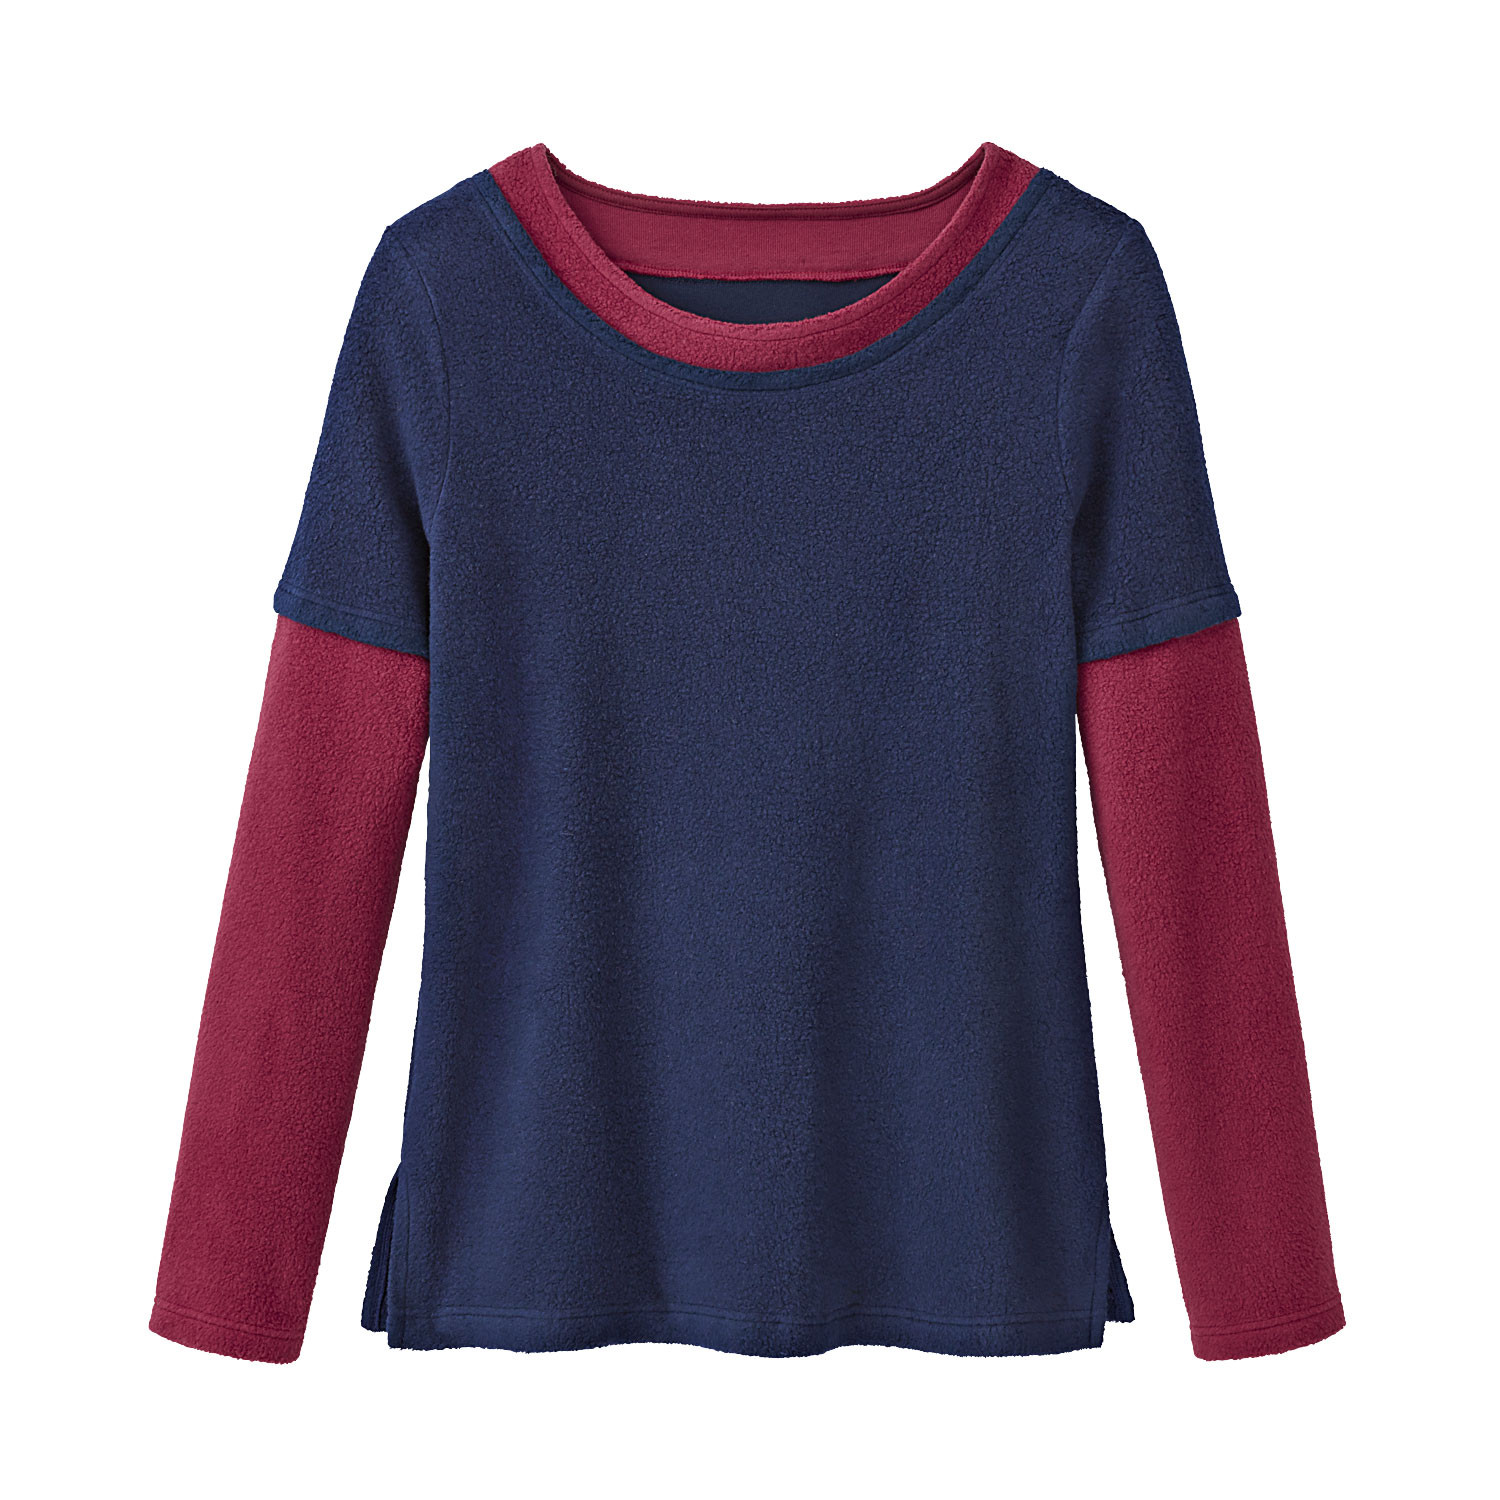 2-in-1 Pullover, nachtblau/beere